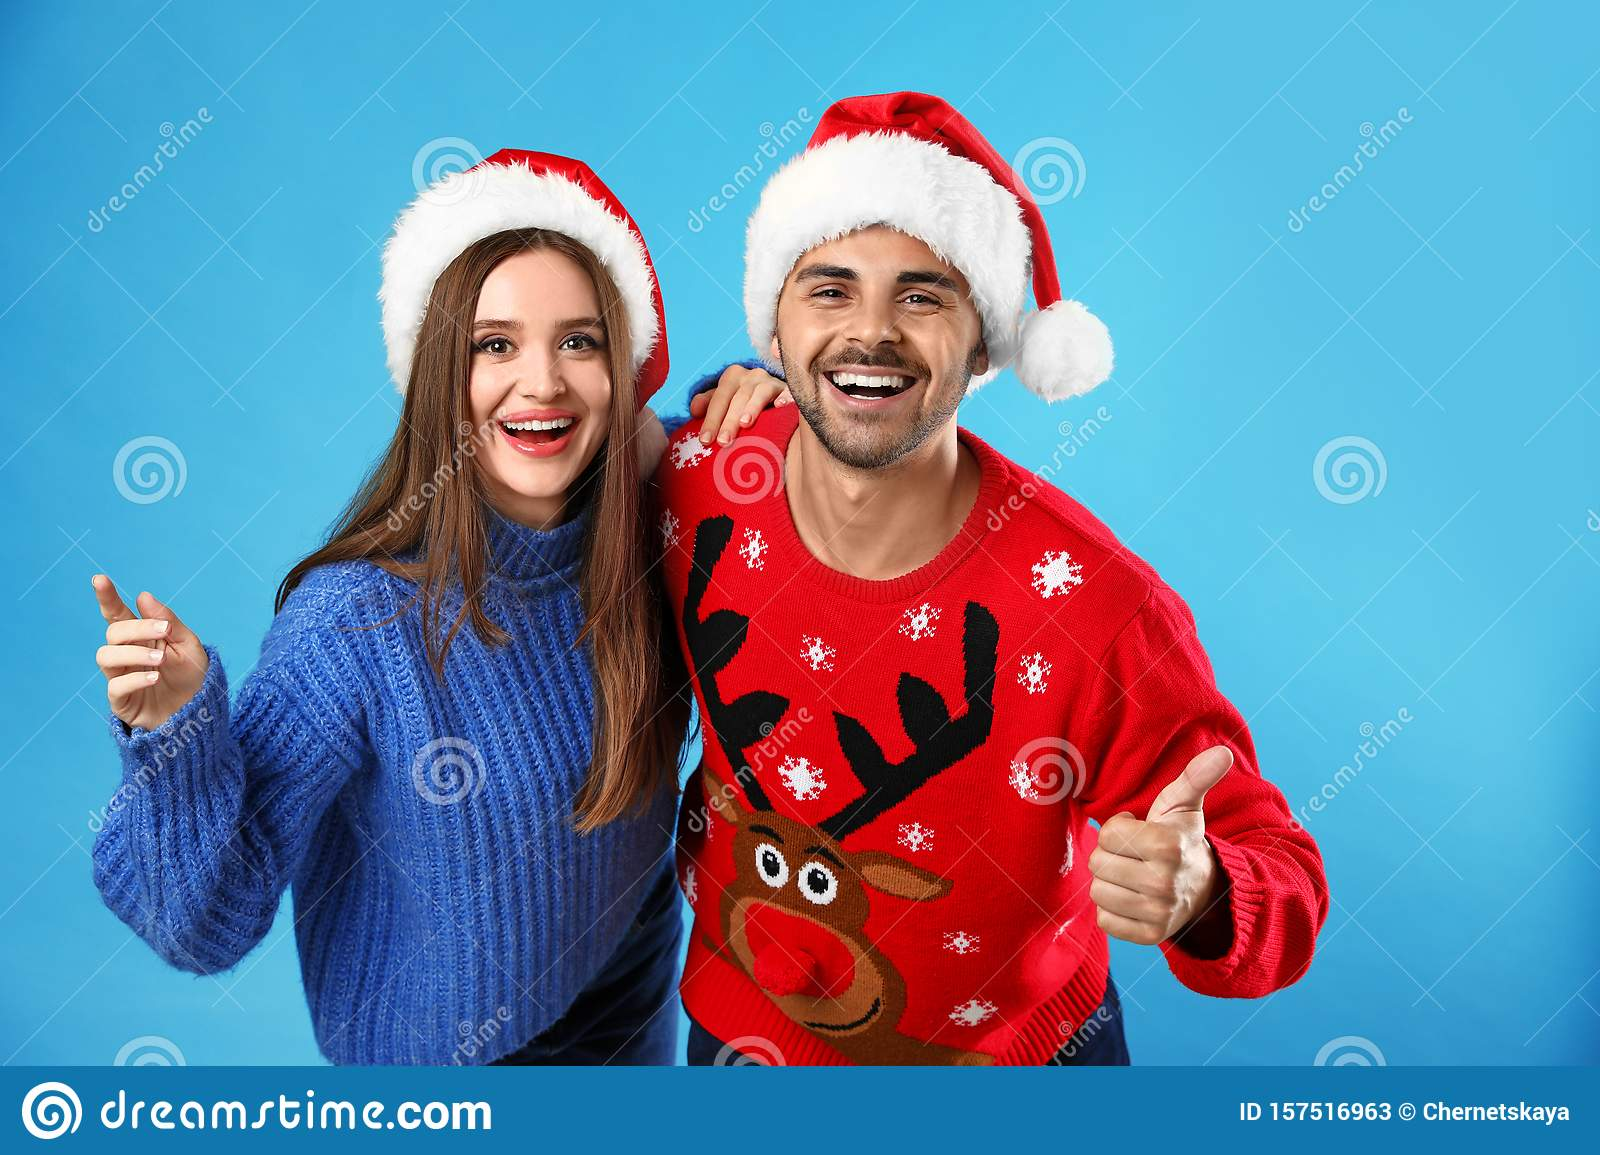 Couple wearing Christmas sweaters and Santa hats